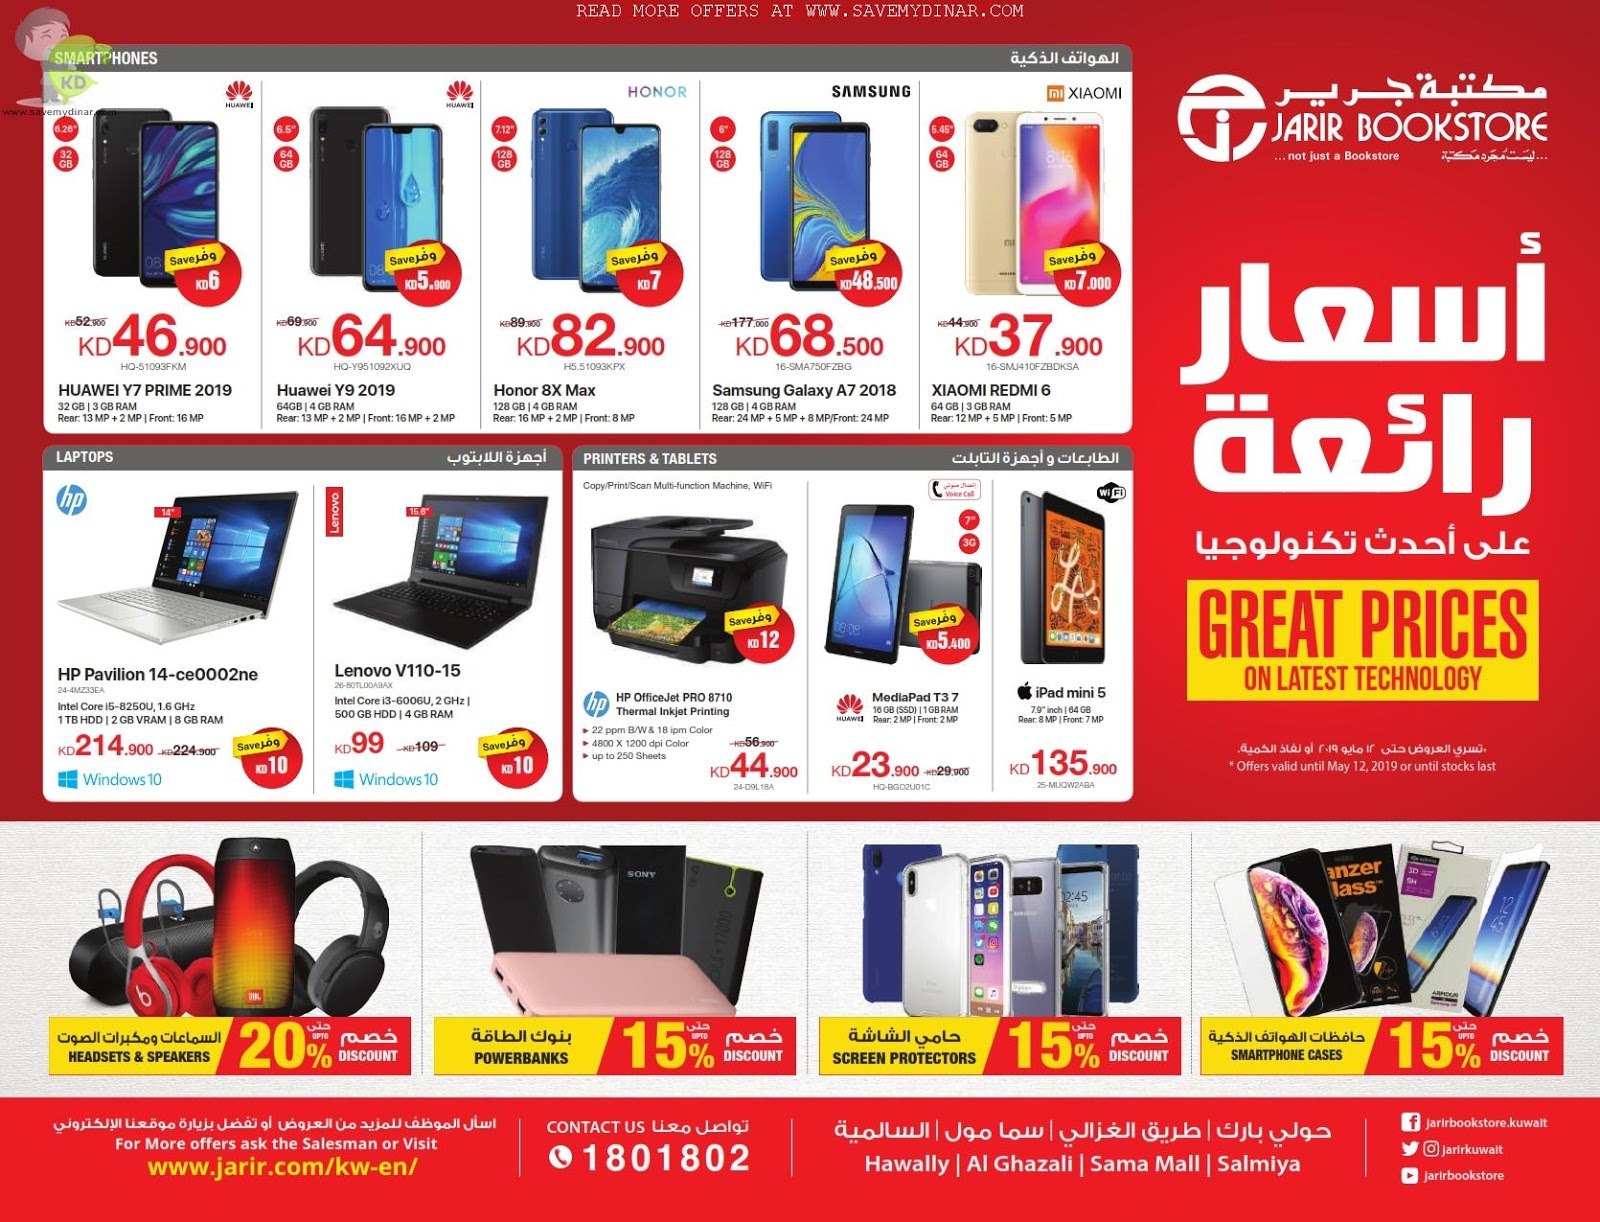 eb2f659e264 Jarir Bookstore Kuwait - Promotions | SaveMyDinar - Offers, Deals ...